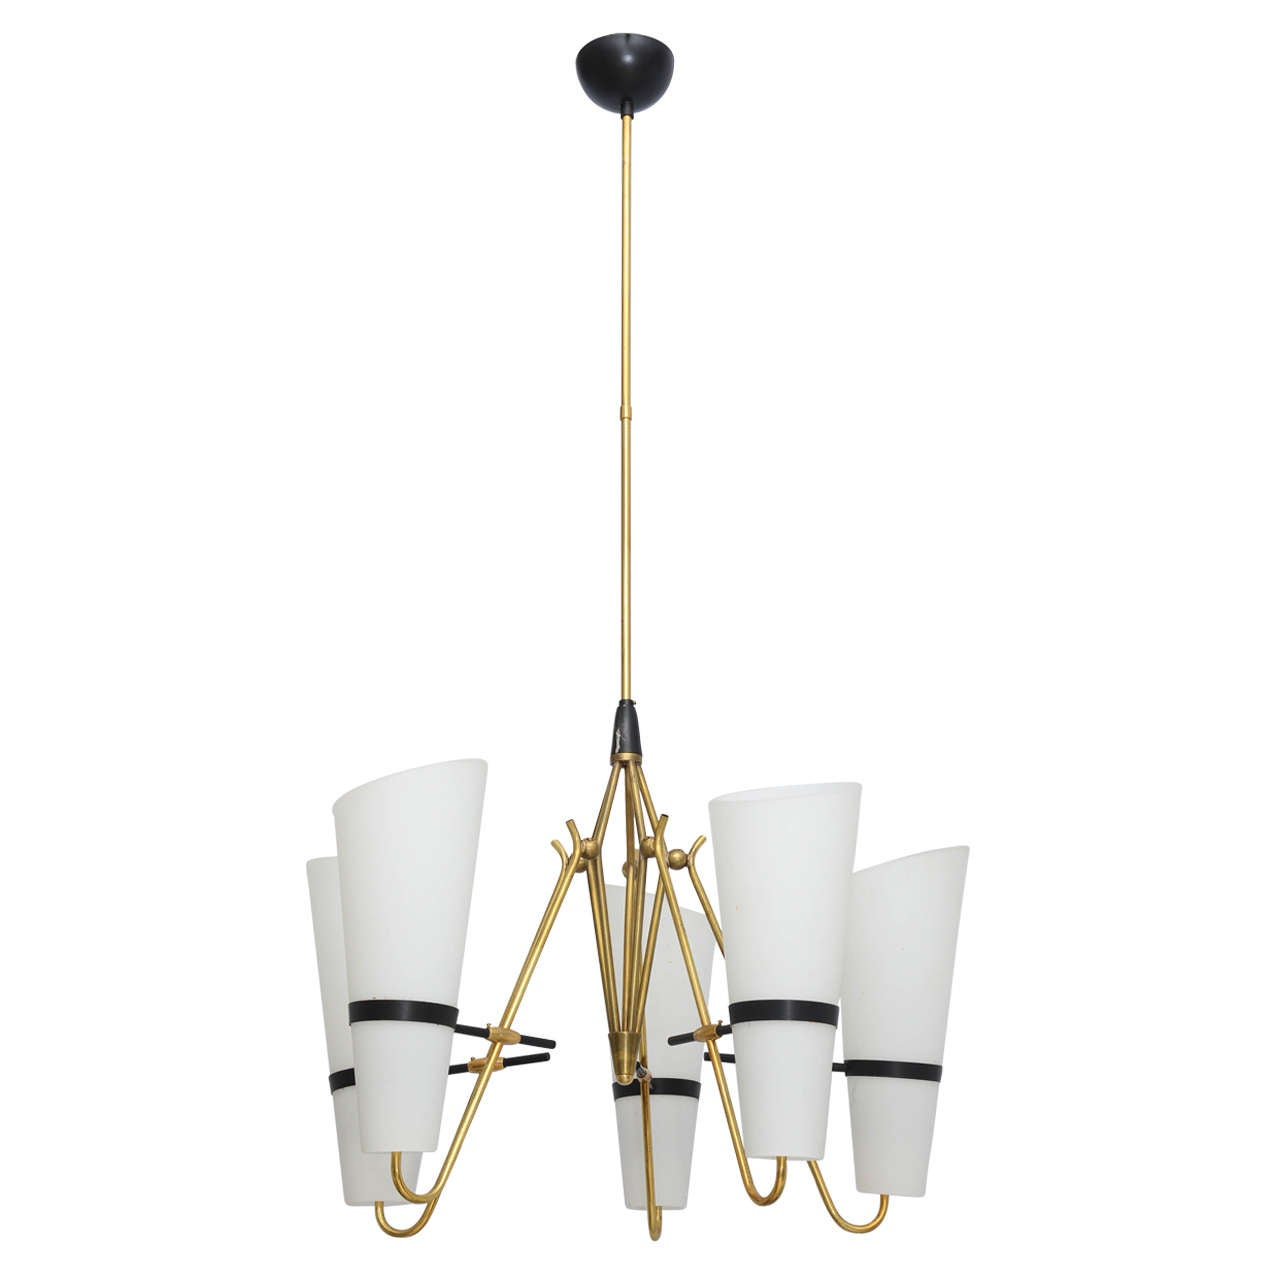 Italian Brass and Glass Chandelier in the Style of Stilnovo 1